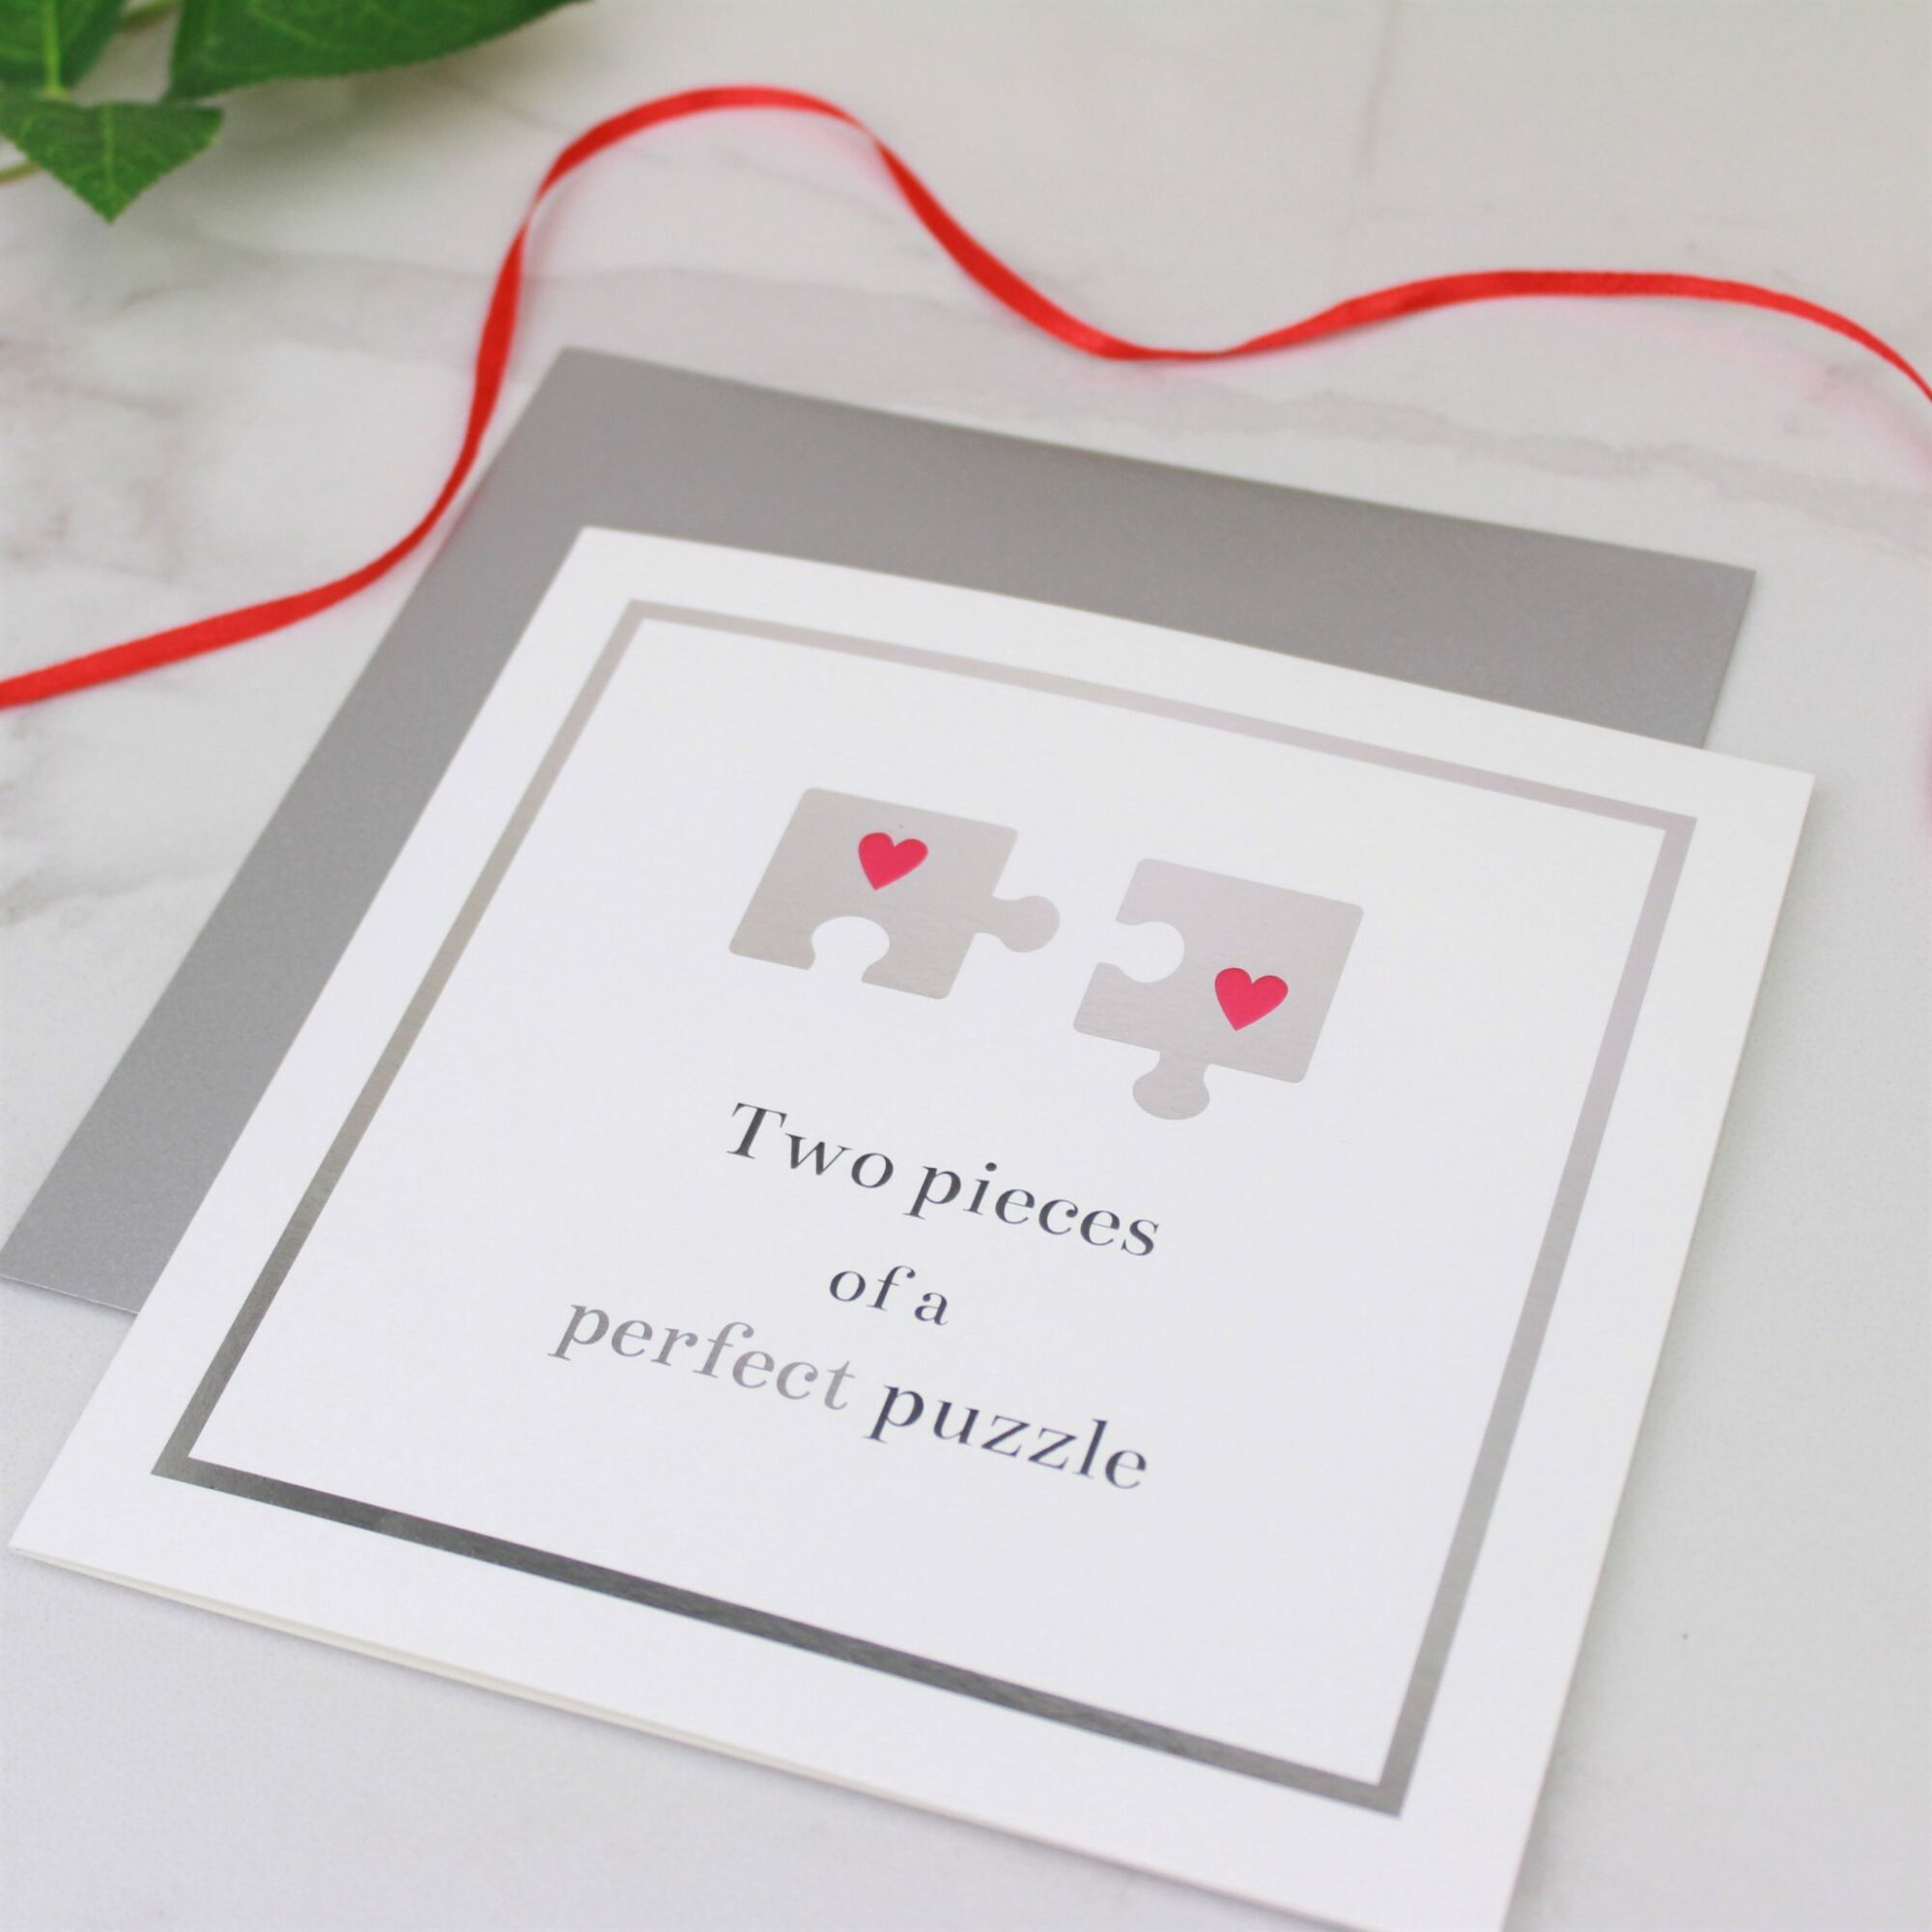 Two Pieces of a Perfect Puzzle Valentines Day Card